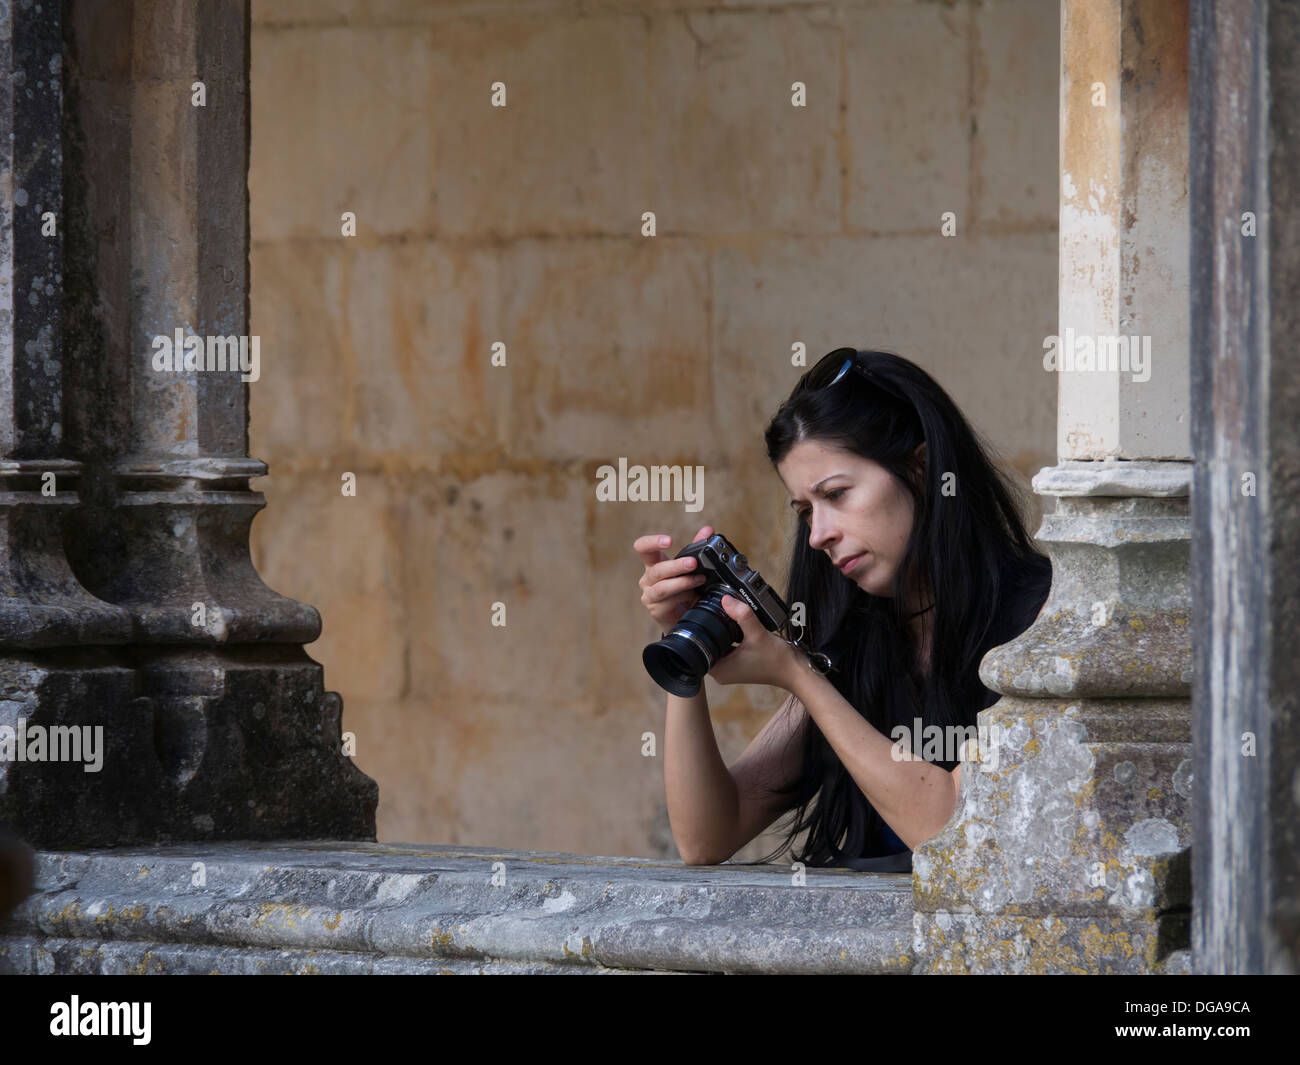 Young woman looking at the LCD on the back of her digital camera while taking pictures - Stock Image